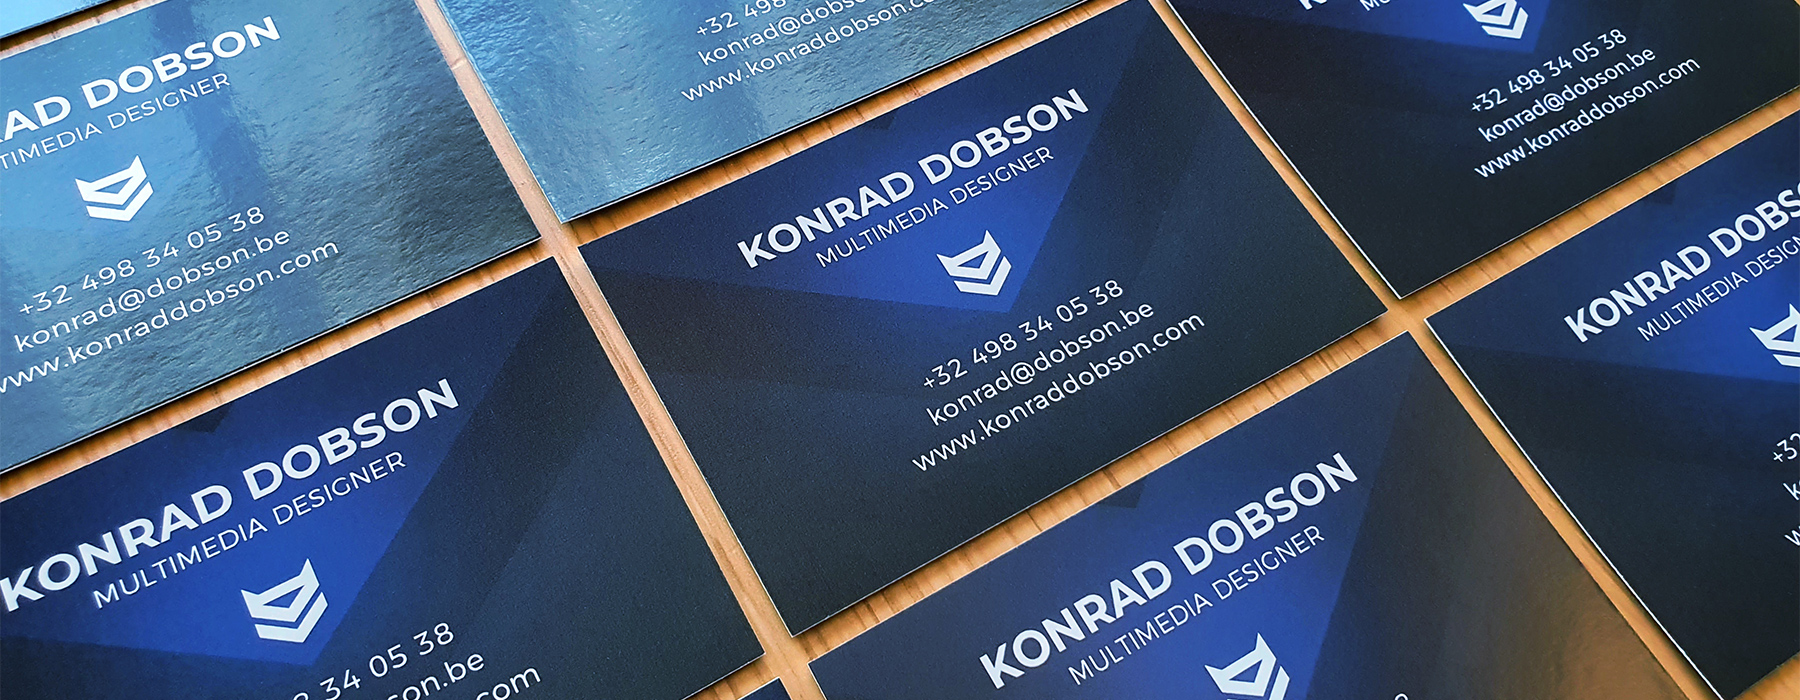 Business Cards Contact Details